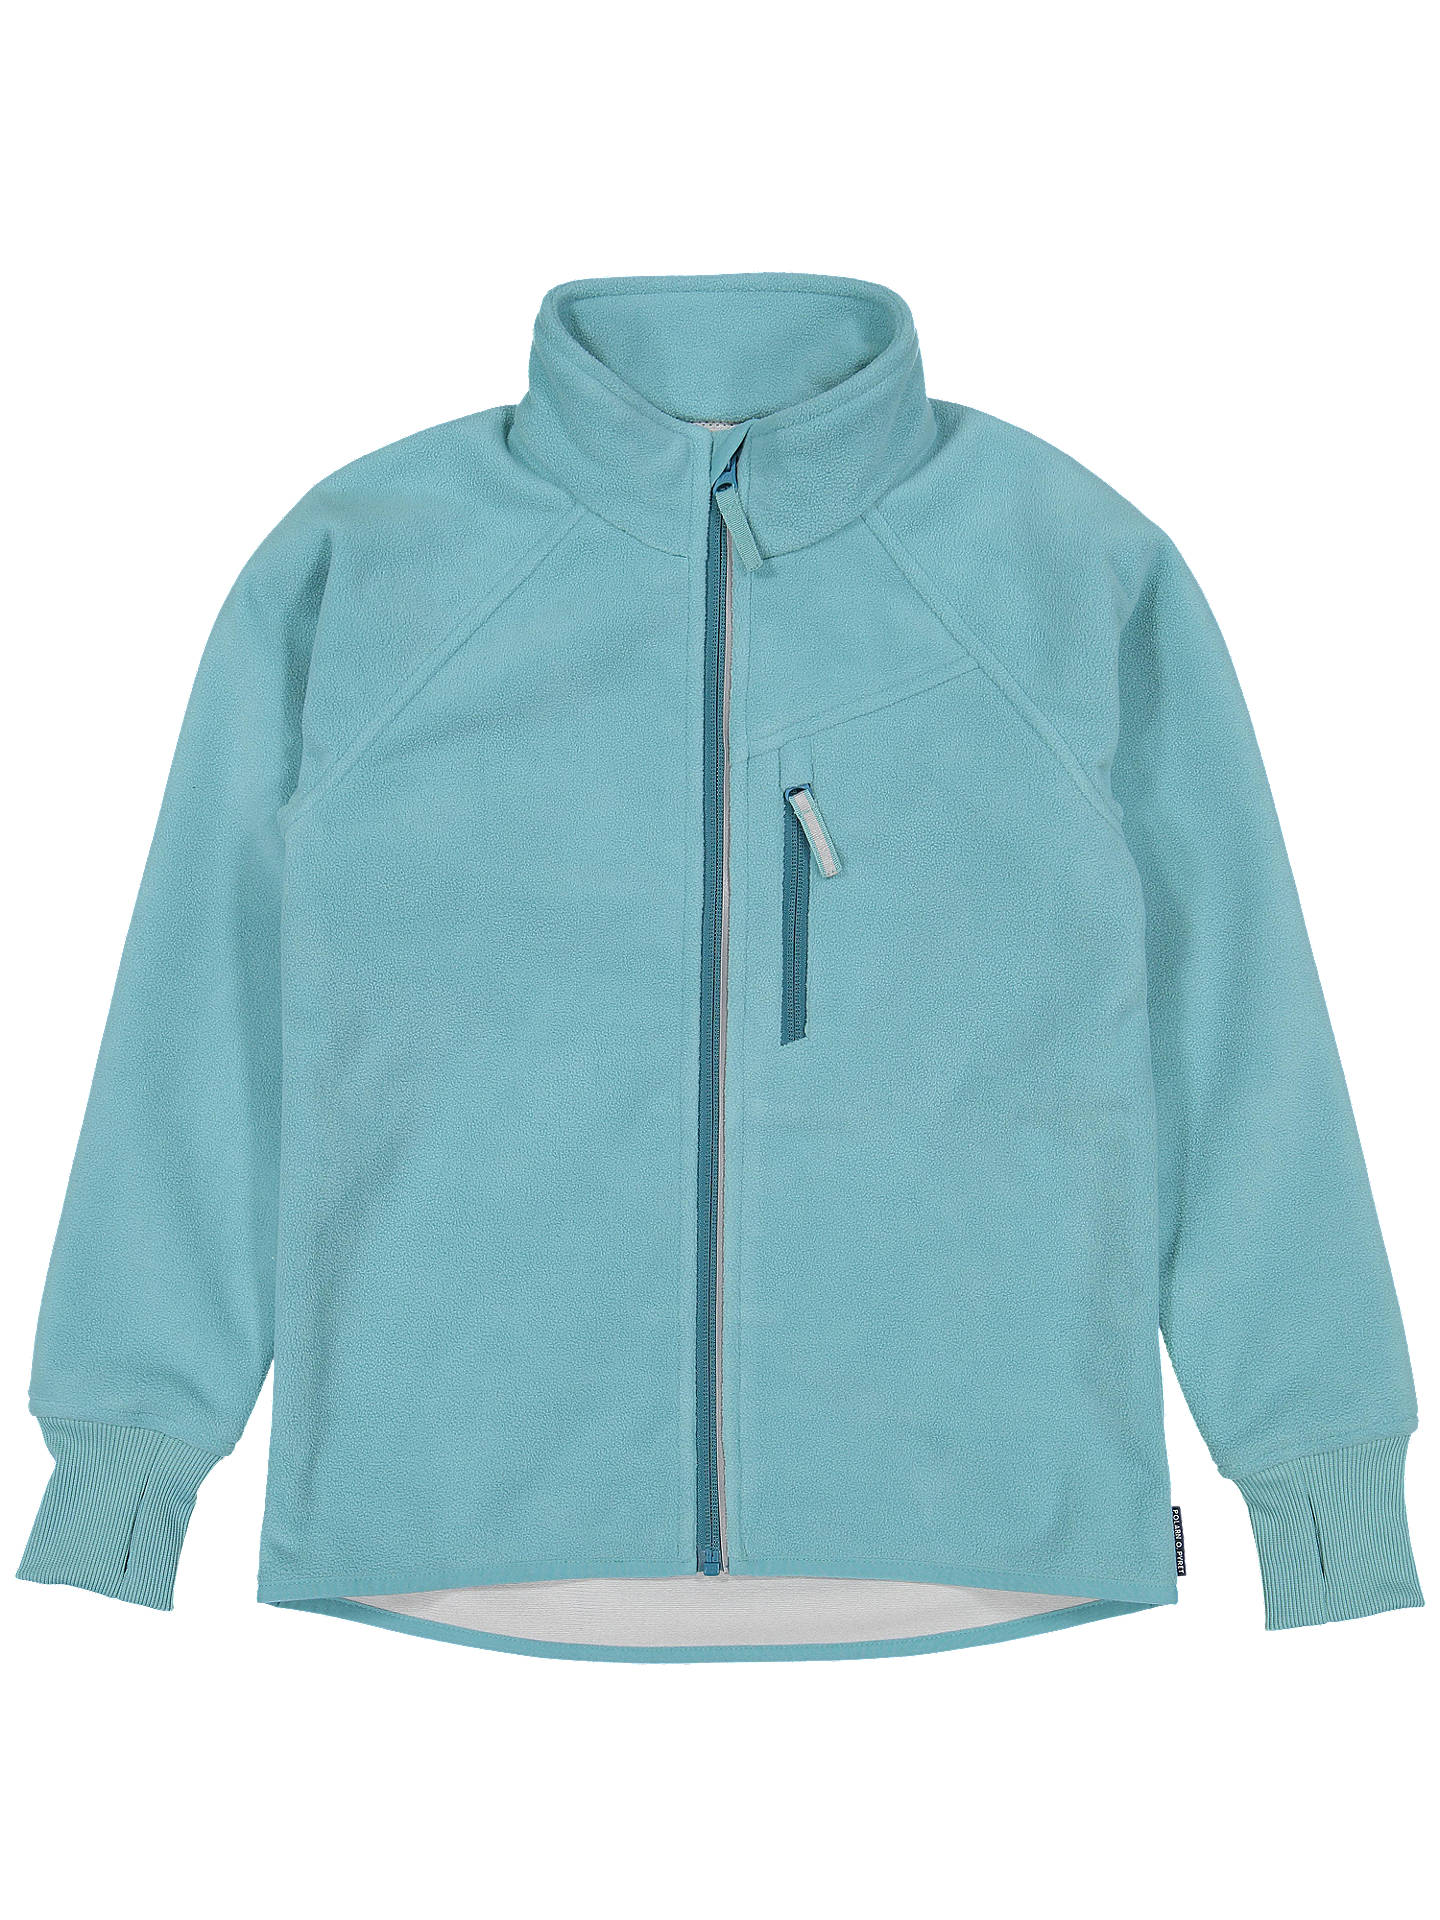 a534771f9 Polarn O. Pyret Children s Waterproof Fleece Jacket